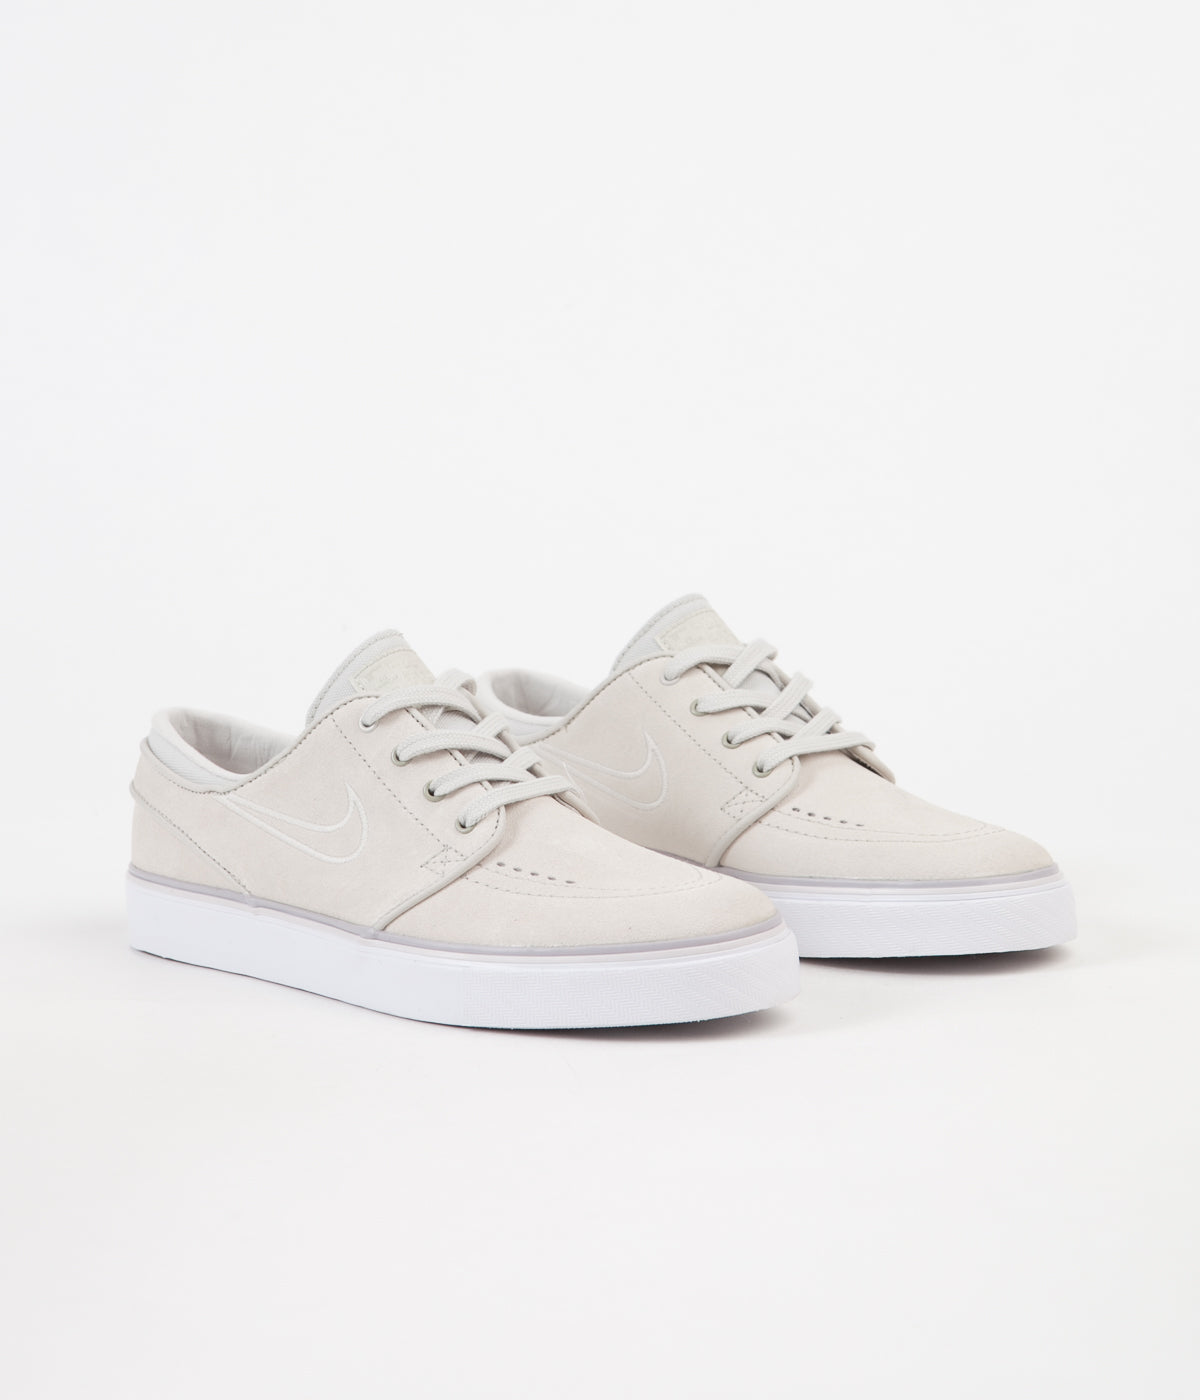 ... Nike SB Womens Stefan Janoski Shoes - White   White - White ... 4be556c38